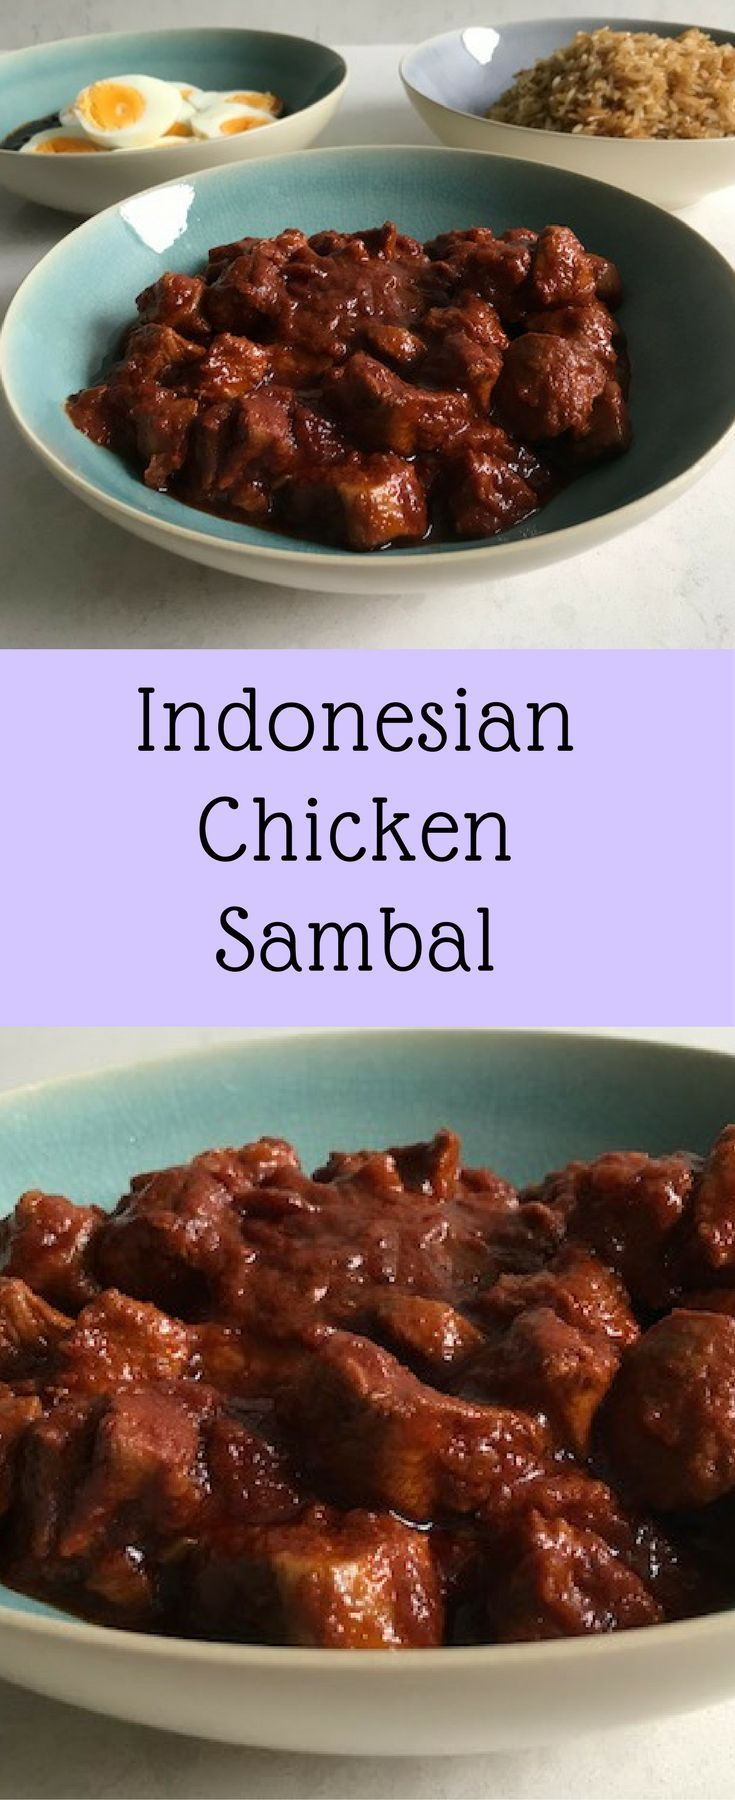 Tender chicken breast cooked in a spicy sambal ( chili paste) sauce is a fine example of the great Indonesian cuisine.